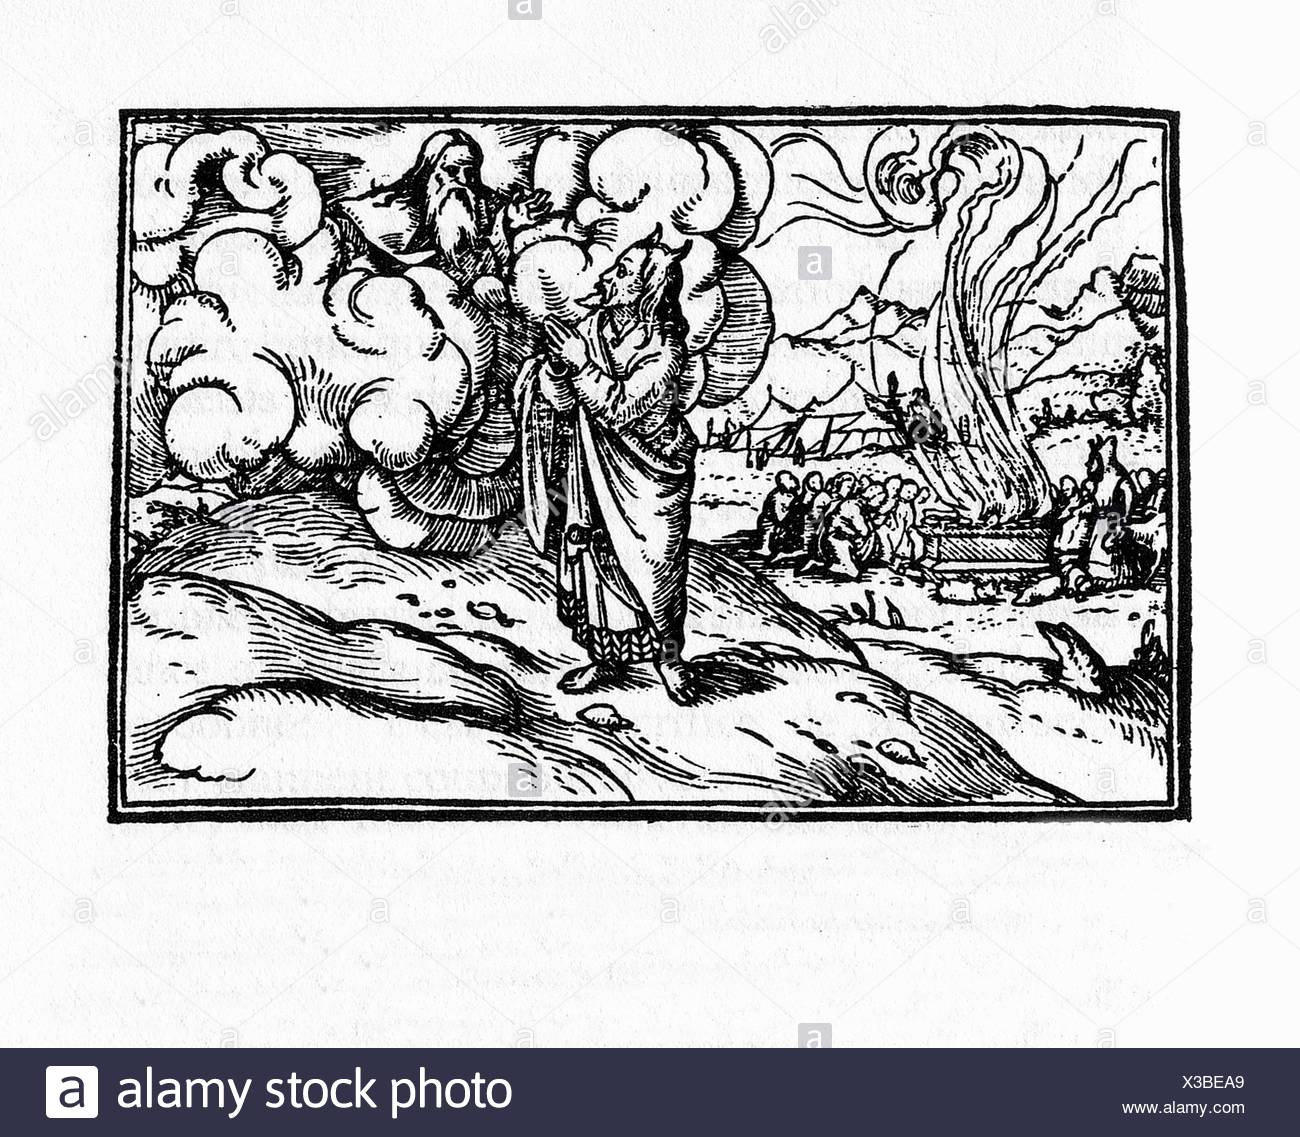 God talks to Moses. Engraving by Holbein. Lyon, 1547 - Stock Image